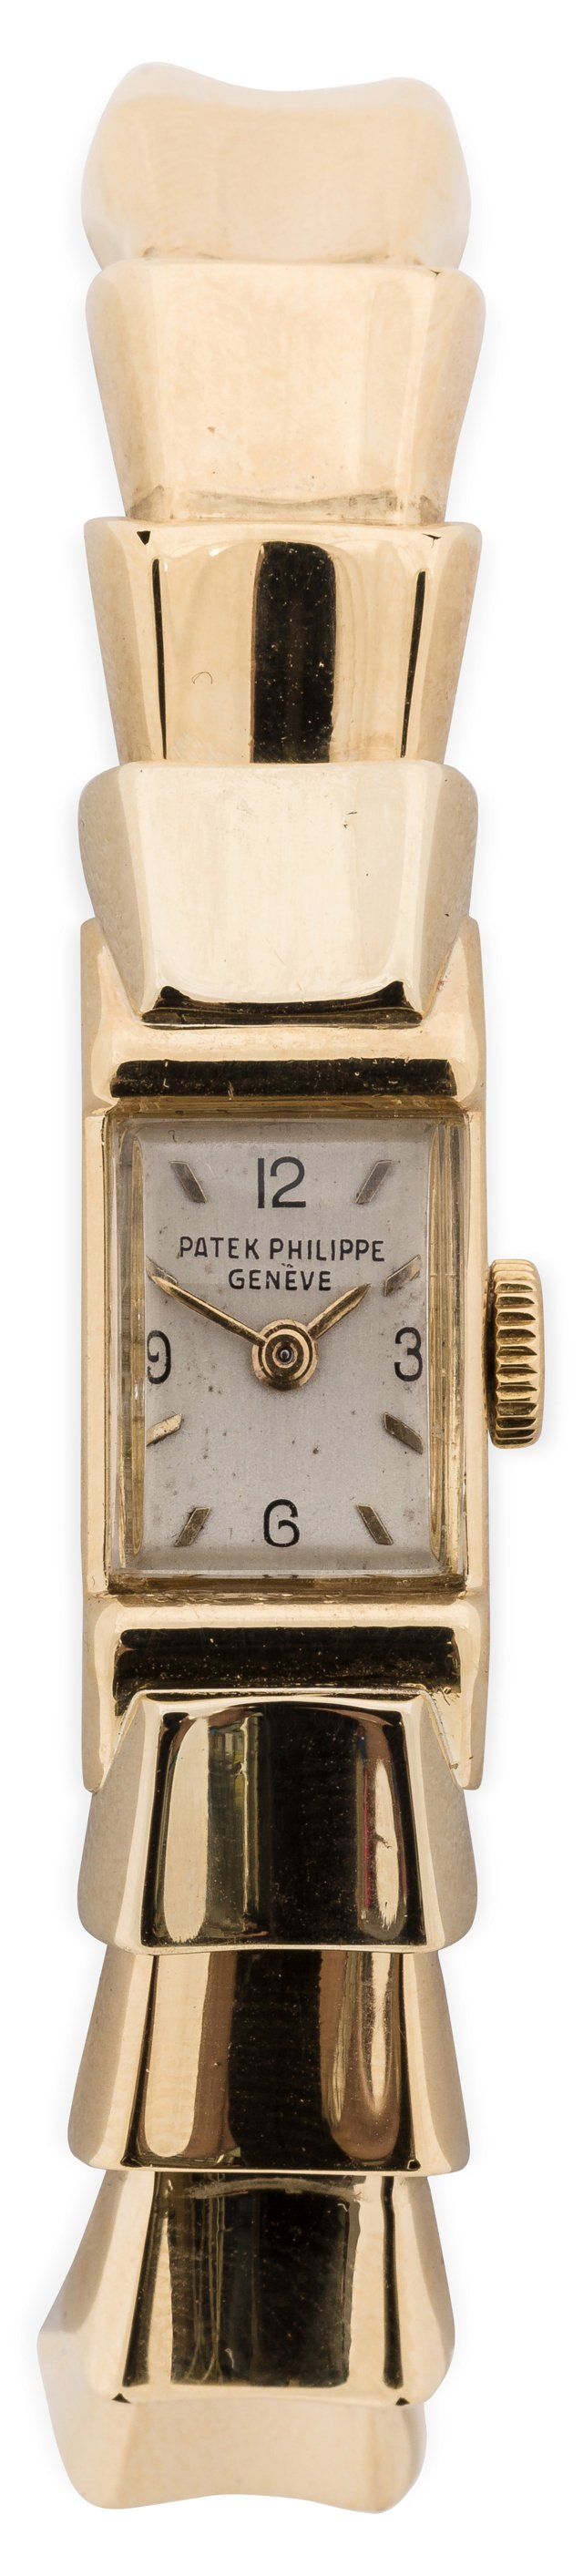 1940s Patek Philippe Bracelet Watch